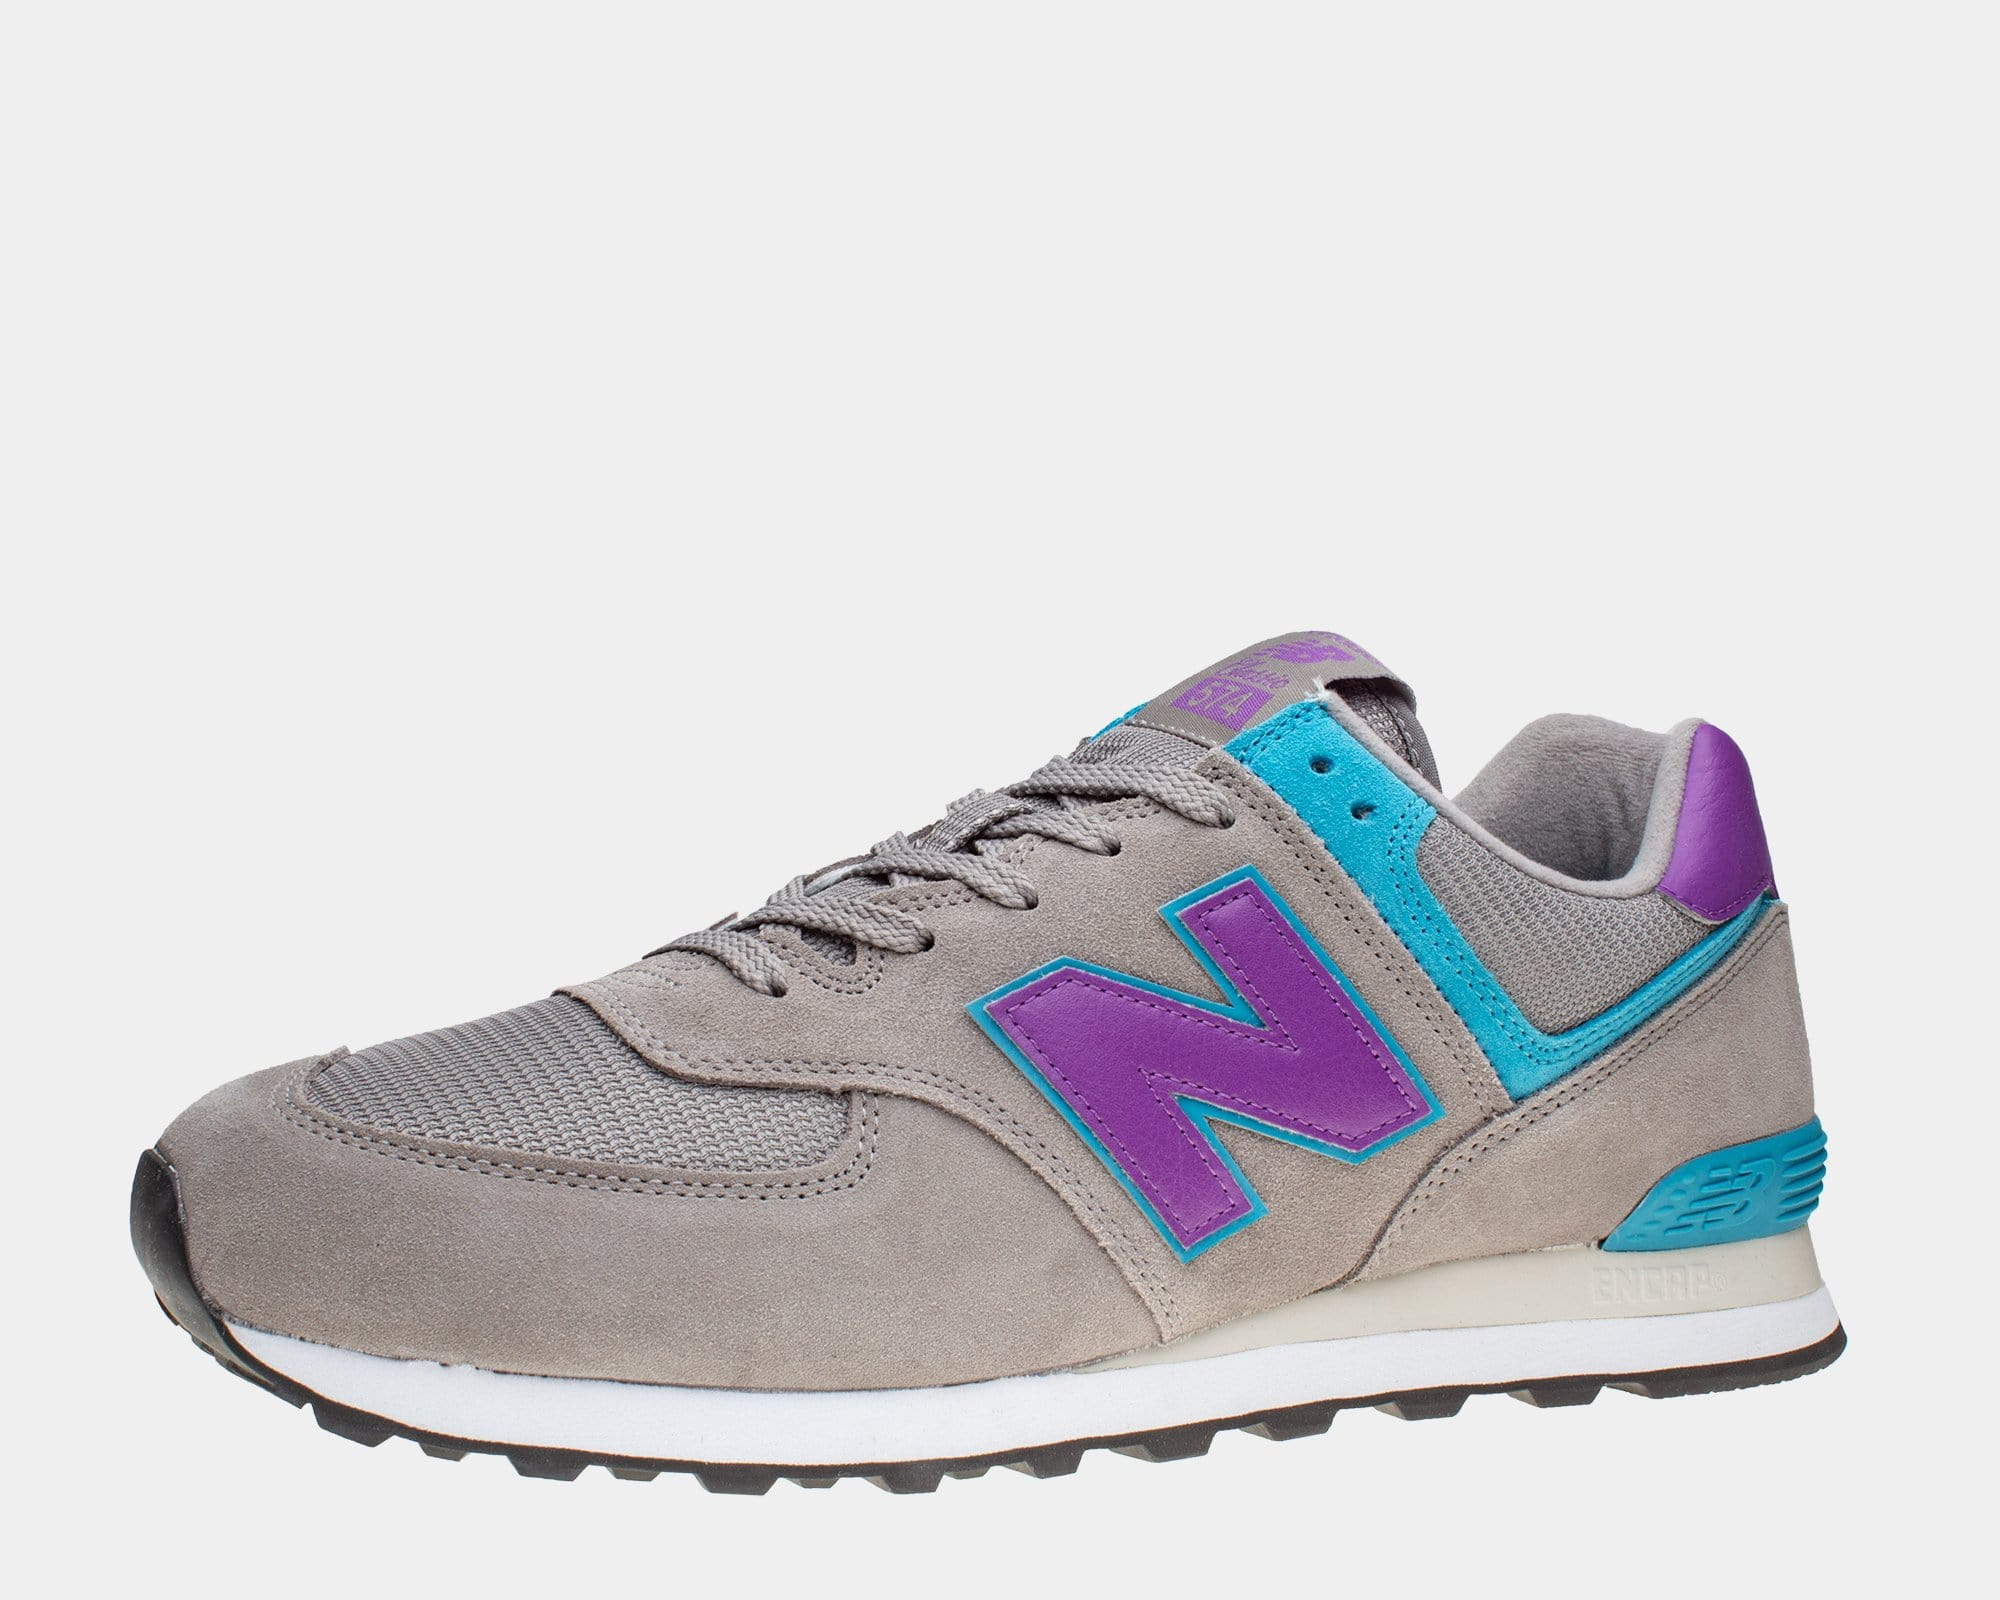 3ac8d3241b25 New Balance 574 Sneakers - Mens Large Sizes